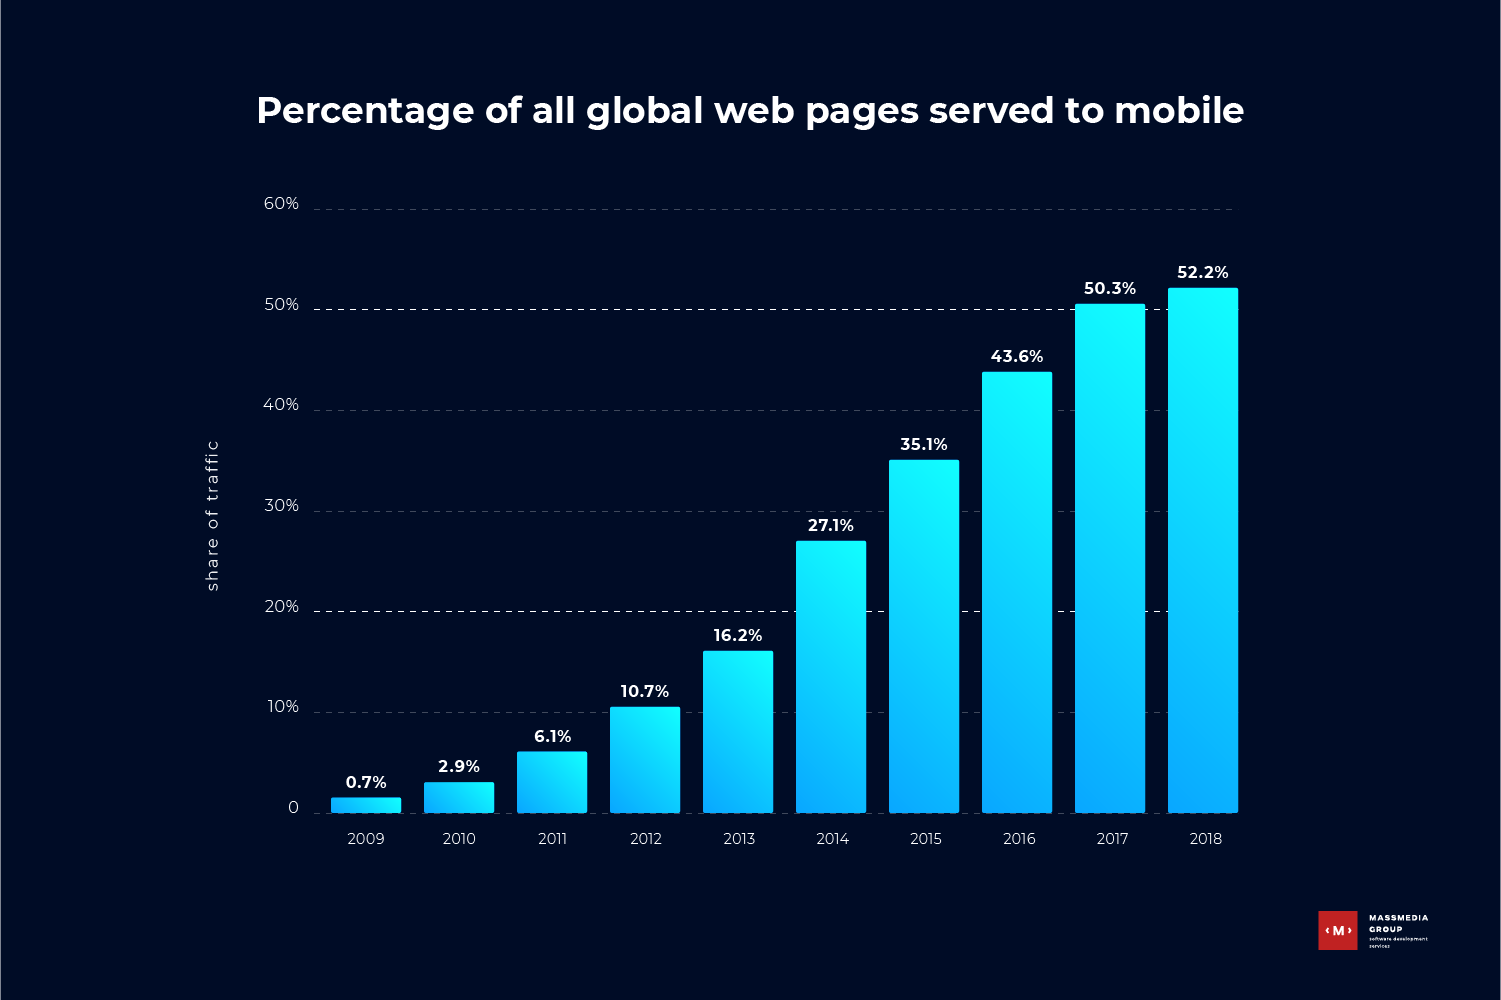 Percentage of all global web pages served to mobile statistics